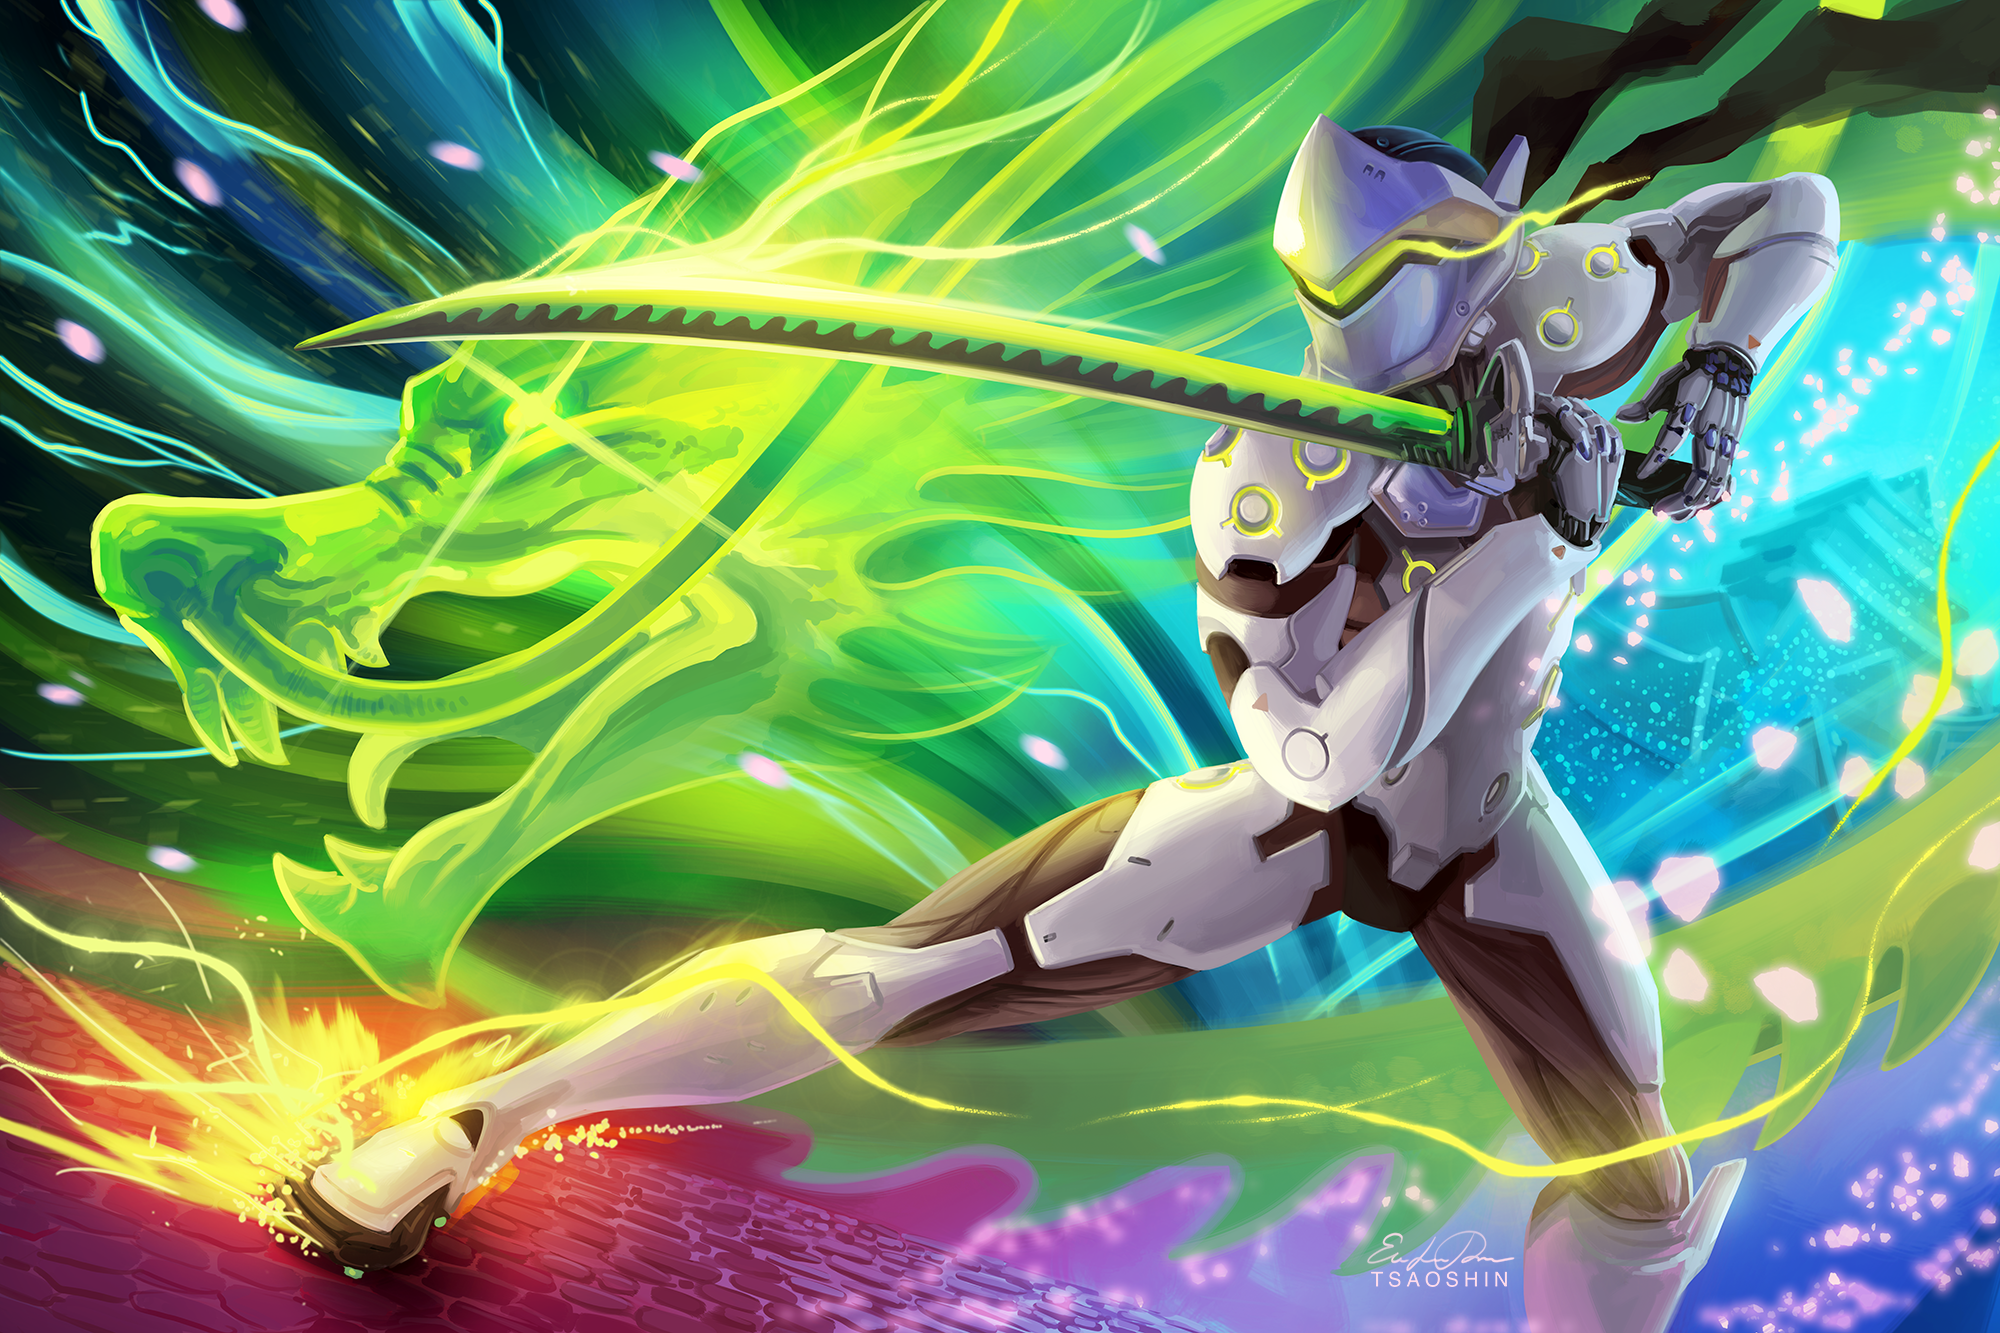 132 Genji Overwatch Fonds dcran HD Arrire Plans 2000x1333